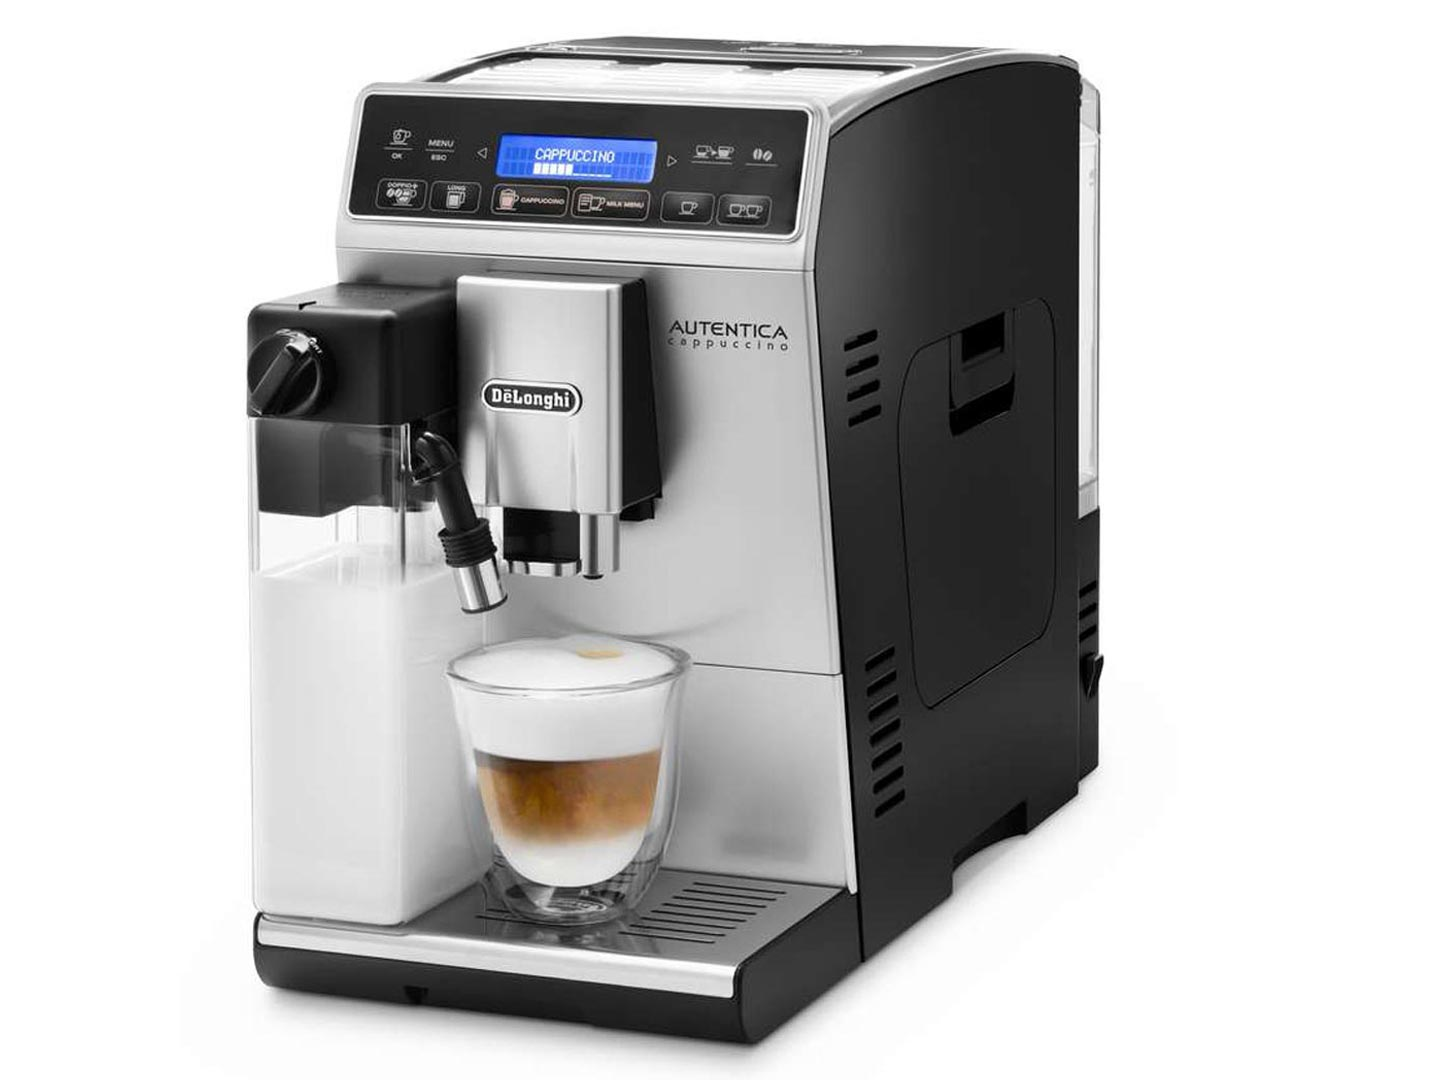 review de longhi autentica cappuccino bean to cup coffee machine the test pit. Black Bedroom Furniture Sets. Home Design Ideas